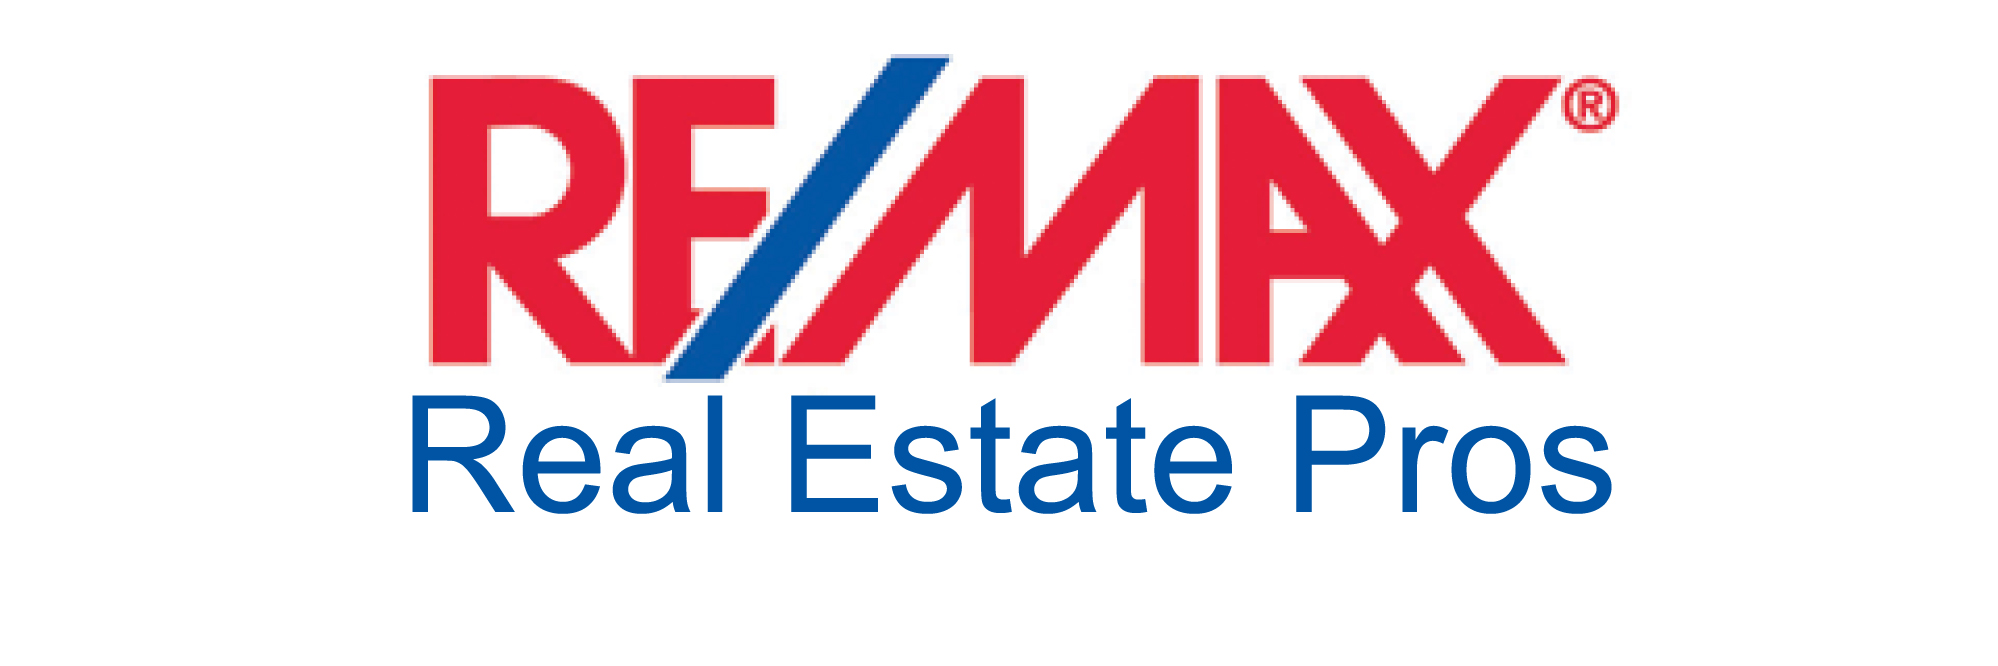 RE/MAX Real Estate Pros logo